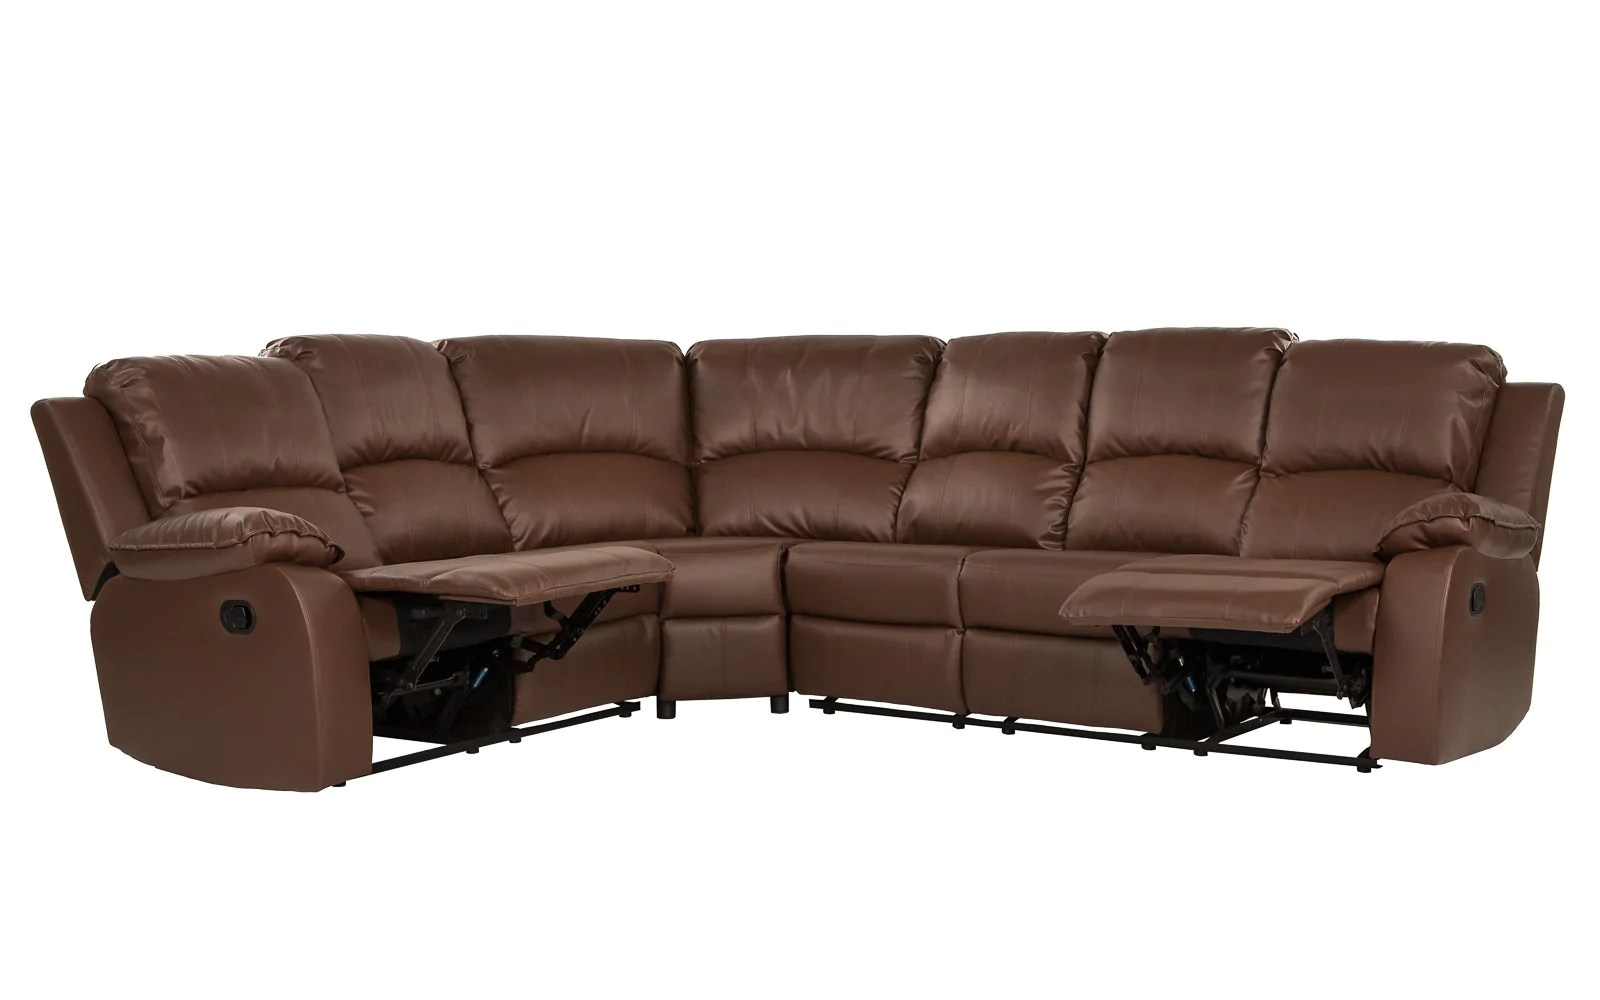 angus bonded leather reclining sofa unusual beds uk recliner sectional bond classic